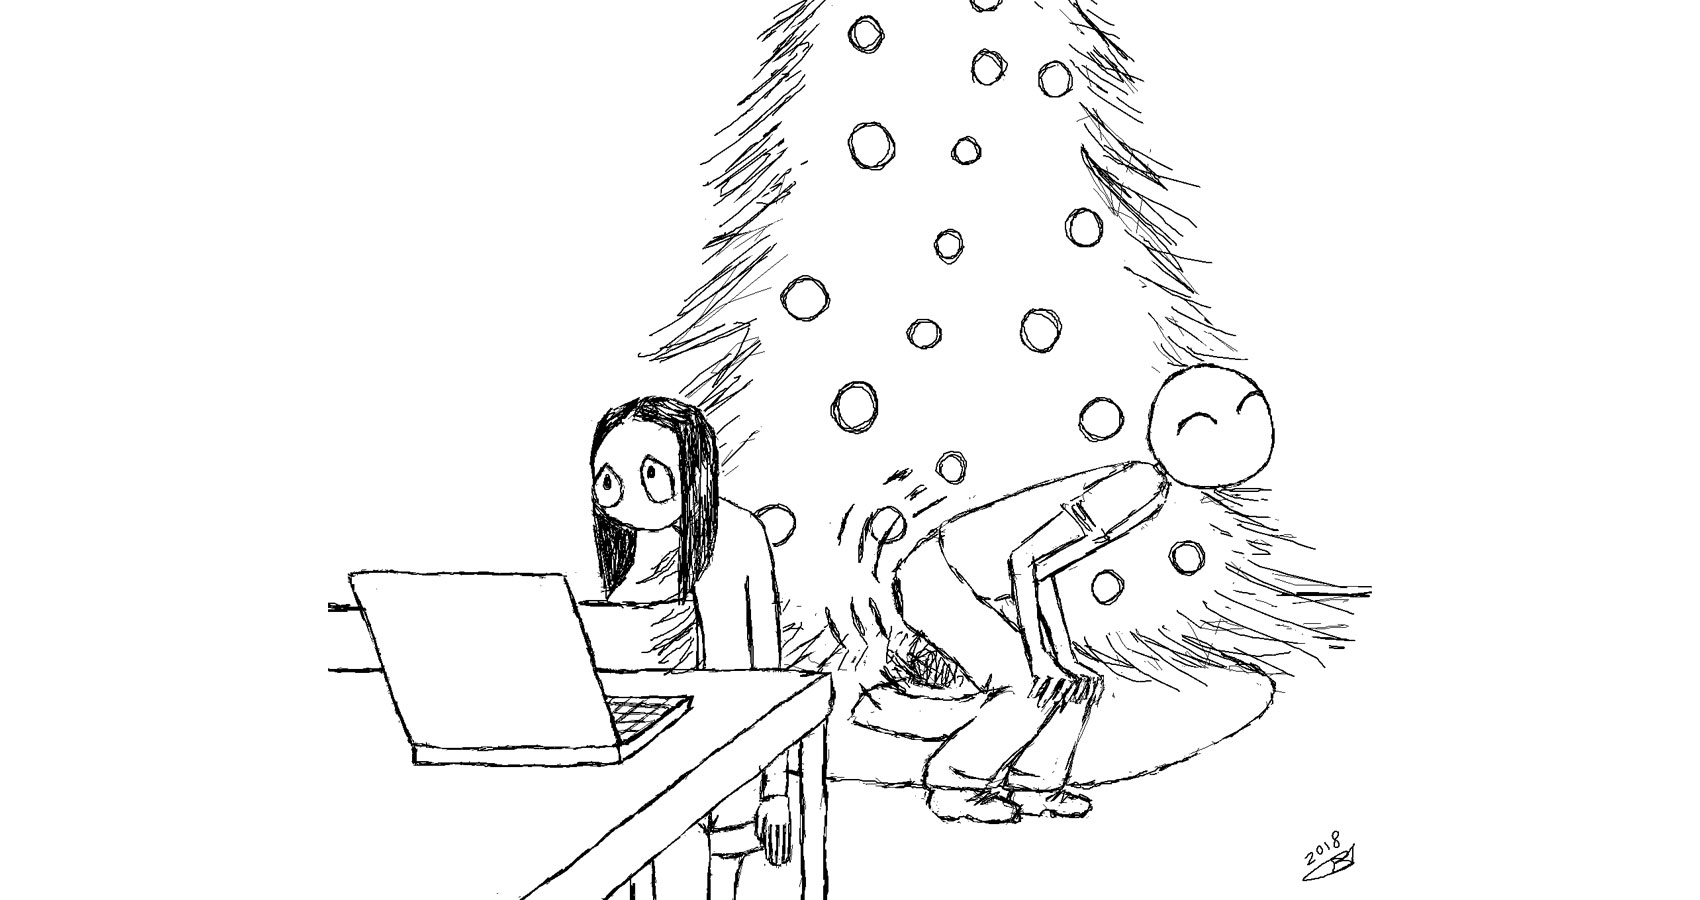 Twerk Around The Tree by Robyn MacKinnon at Spillwords.com